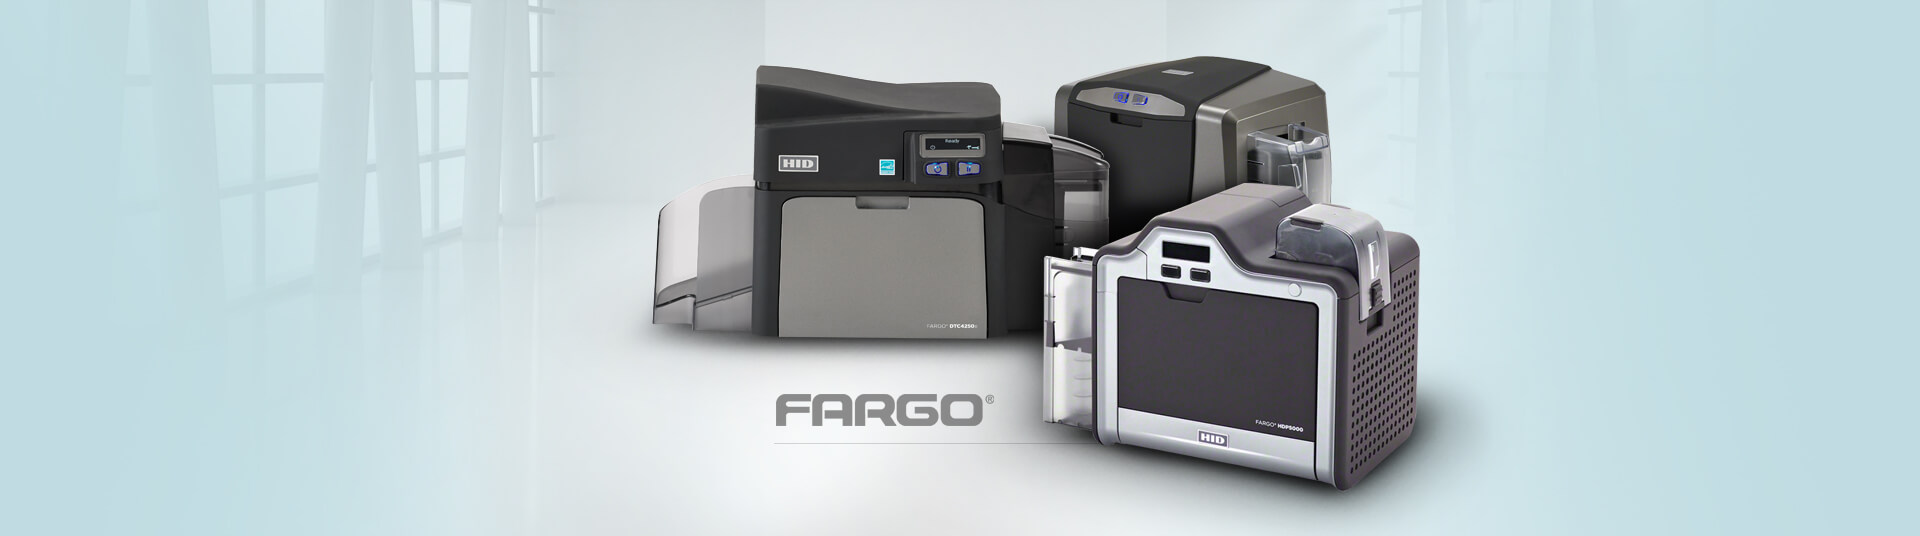 Fargo Badge Machines